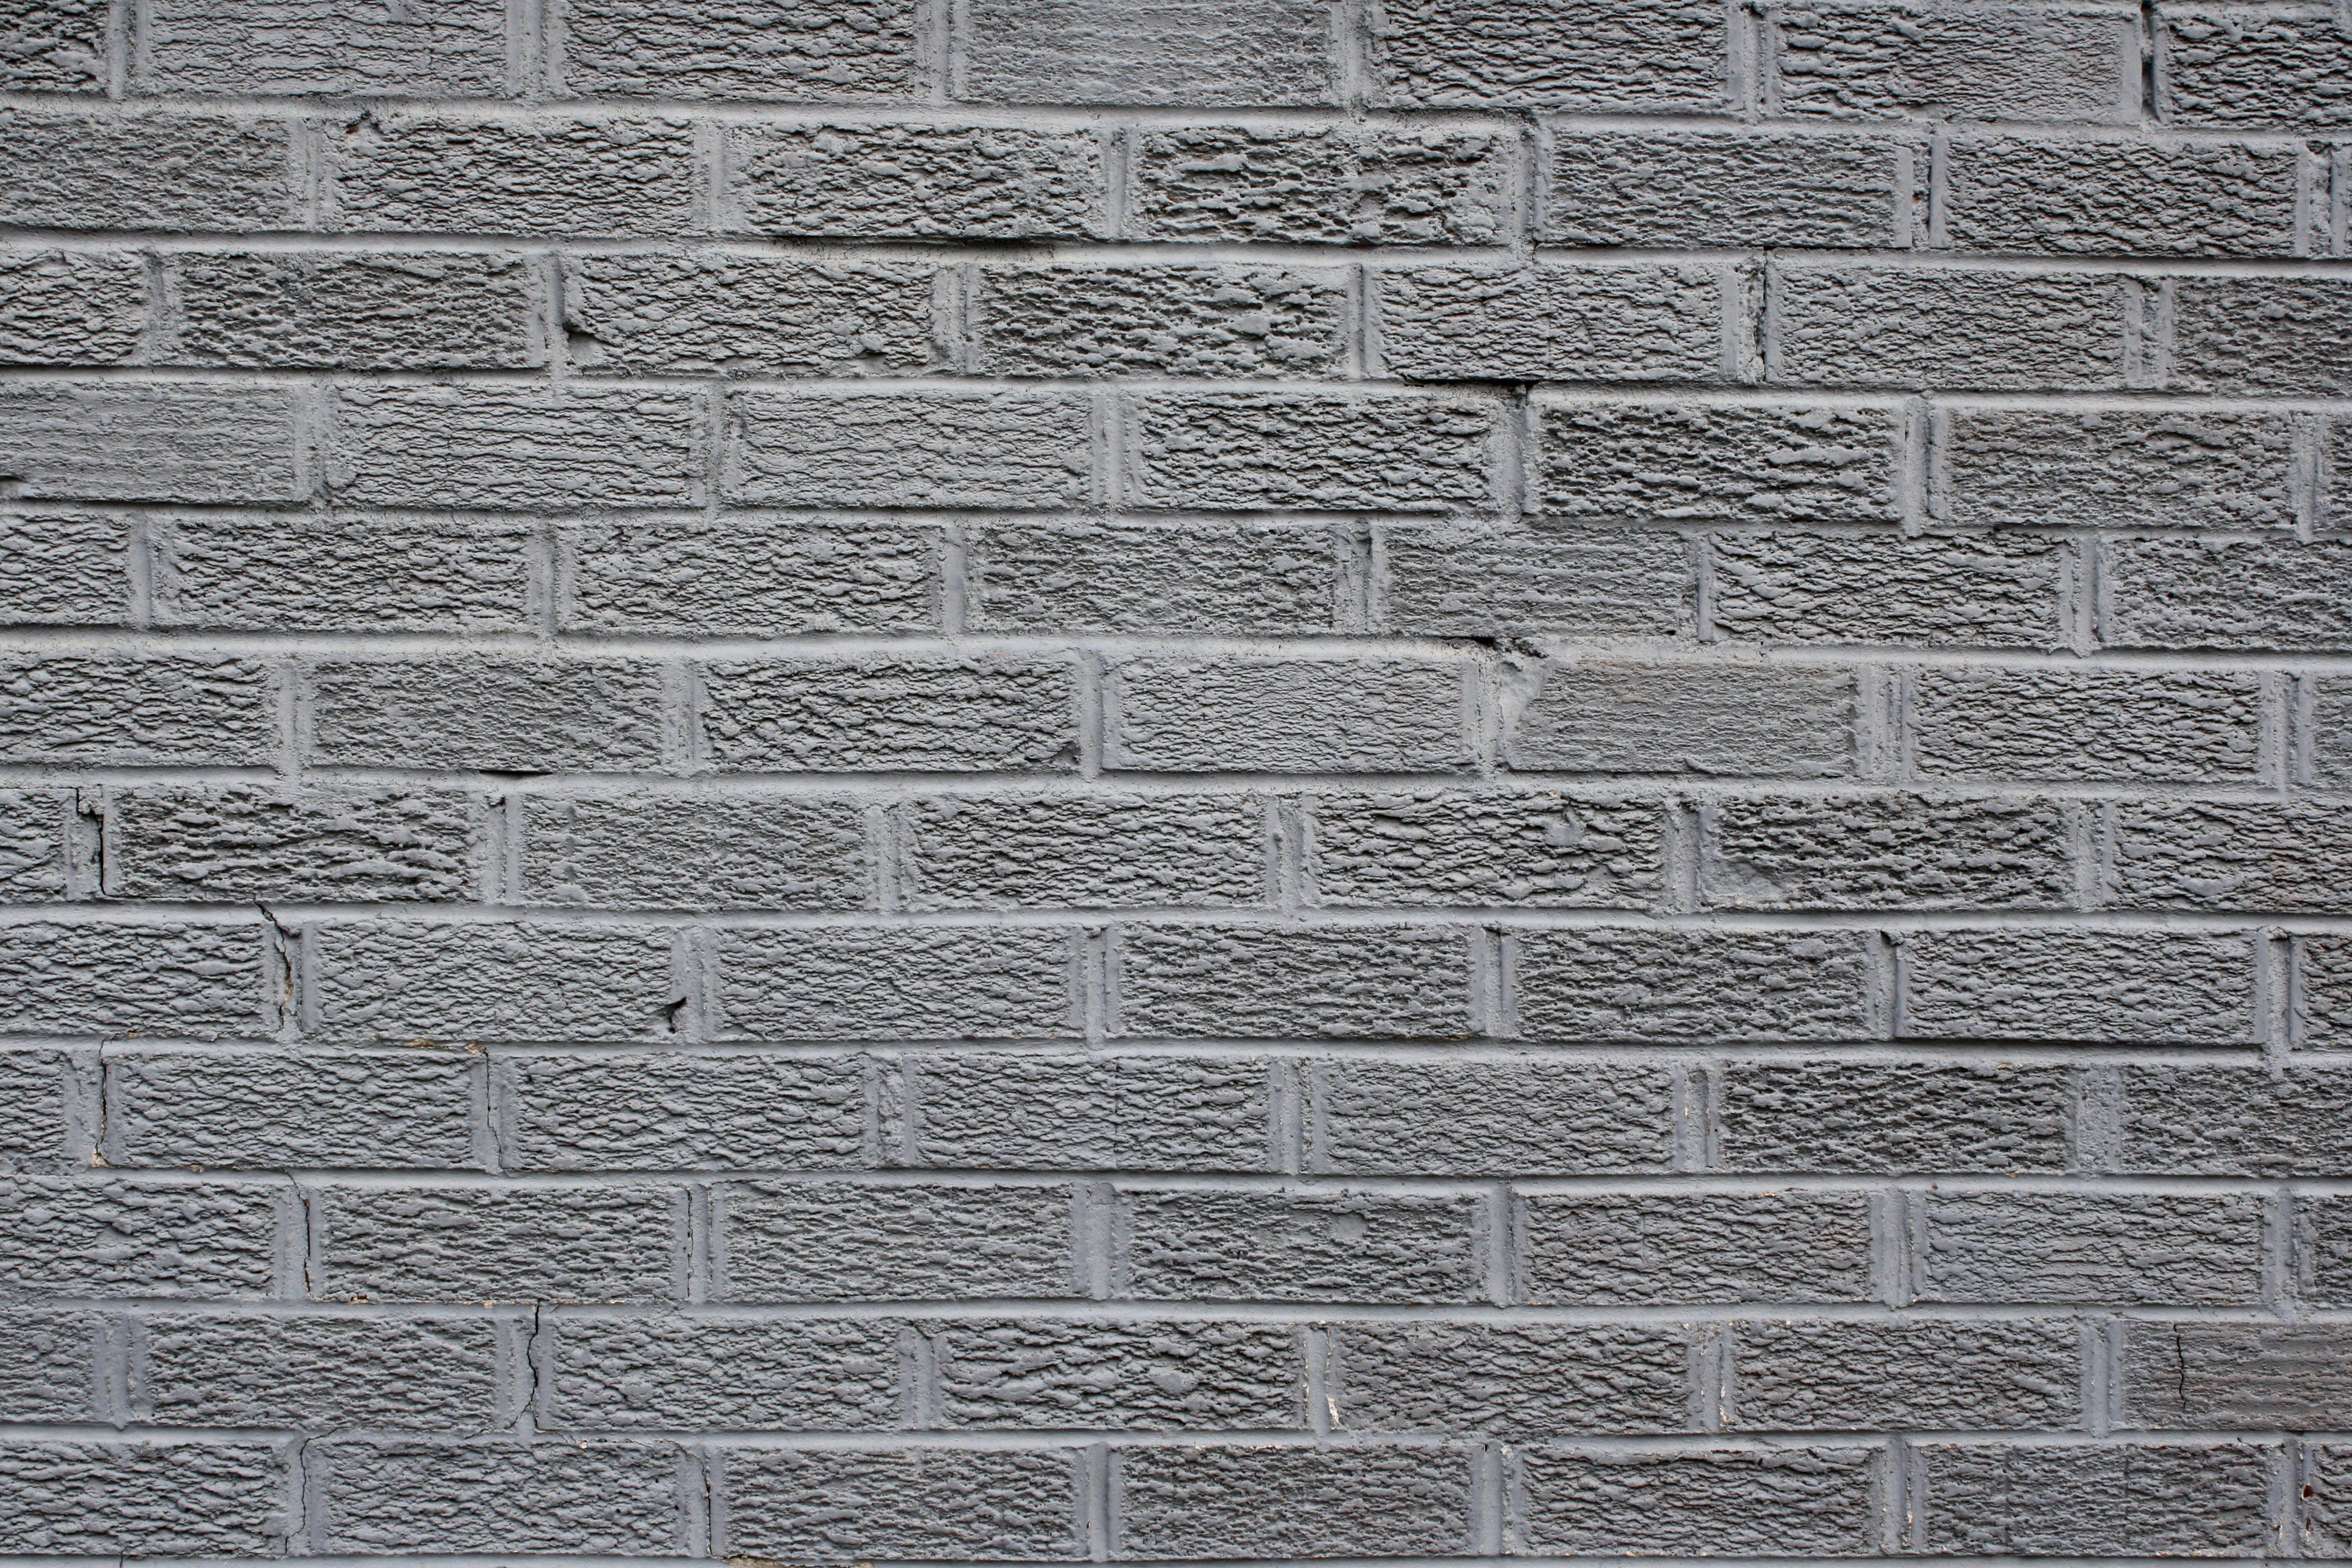 Free High Resolution Texture Photo Of A Gray Brick Wall This Is Made From Textured Bricks That Have Been Painted Grey Color Great Background Image